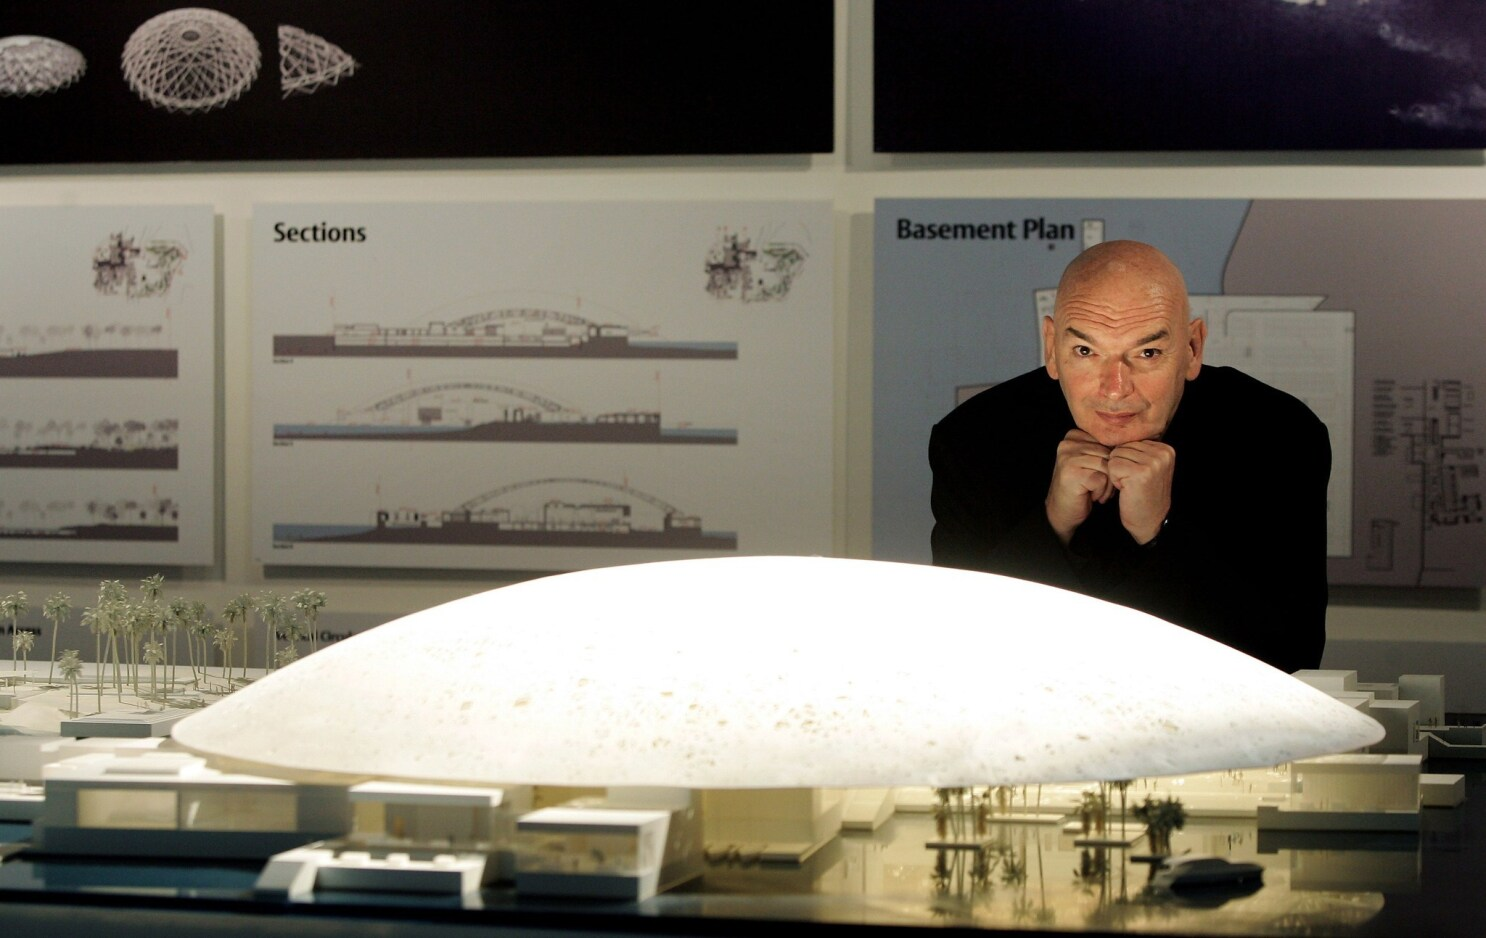 Louvre Abu Dhabi to receive loan of 300 works from French museums